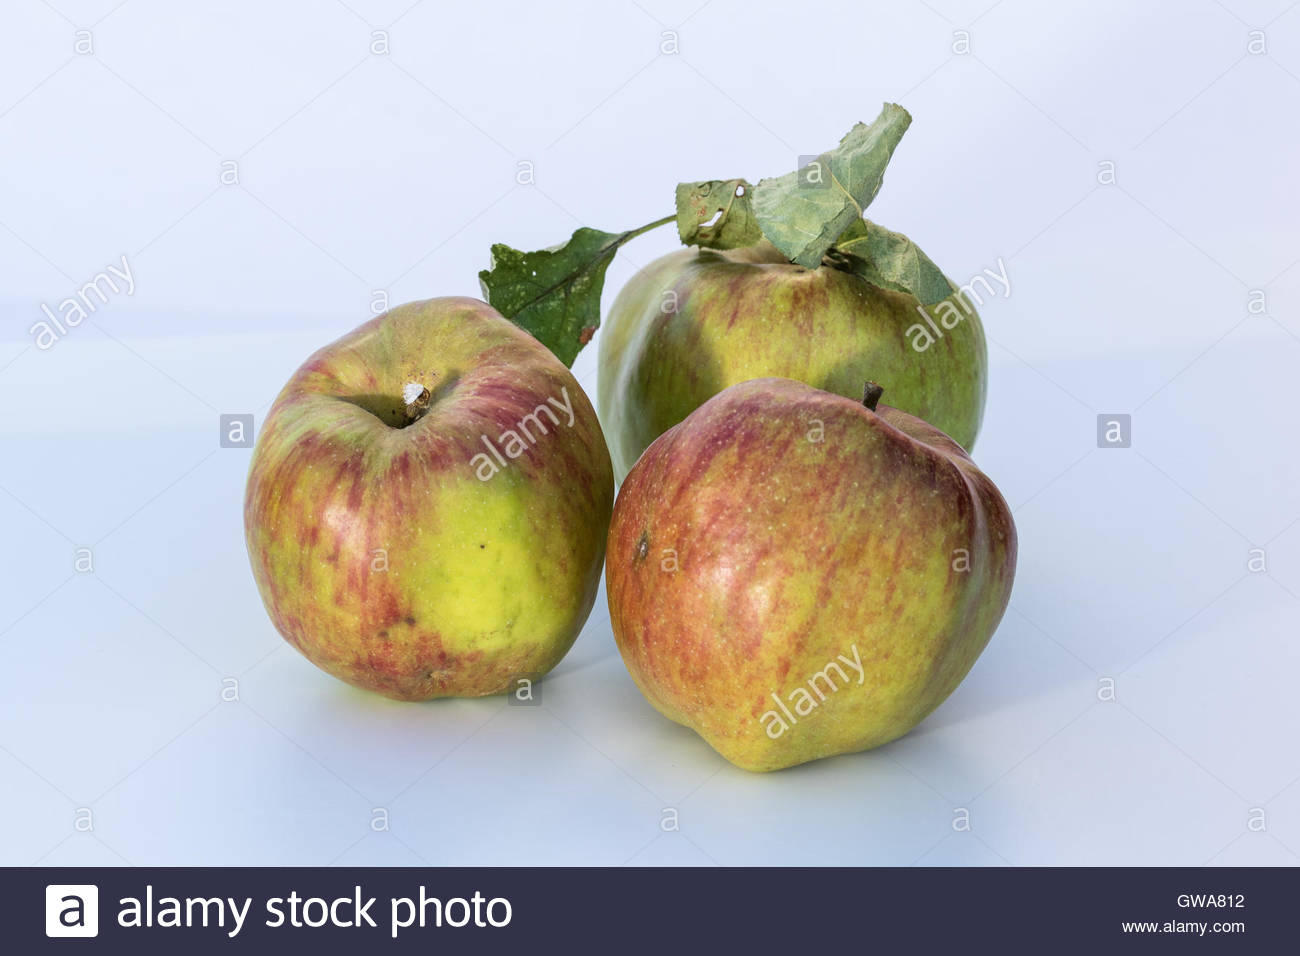 An arrangement of three Cornish Gilliflower apples on a white background first found in Truro in about 1800. - Stock Image